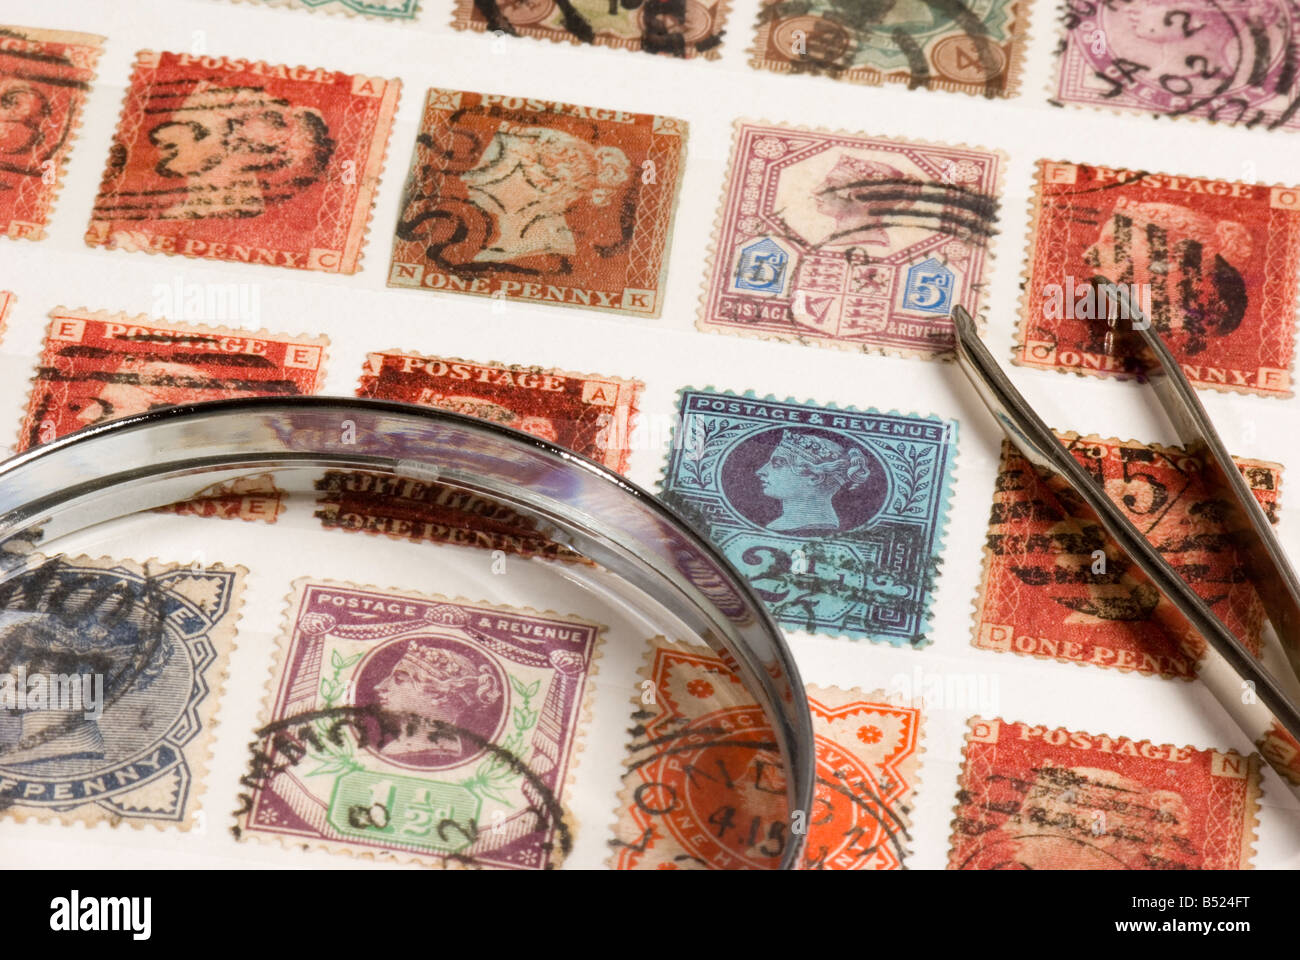 Victorian postage stamps - Stock Image